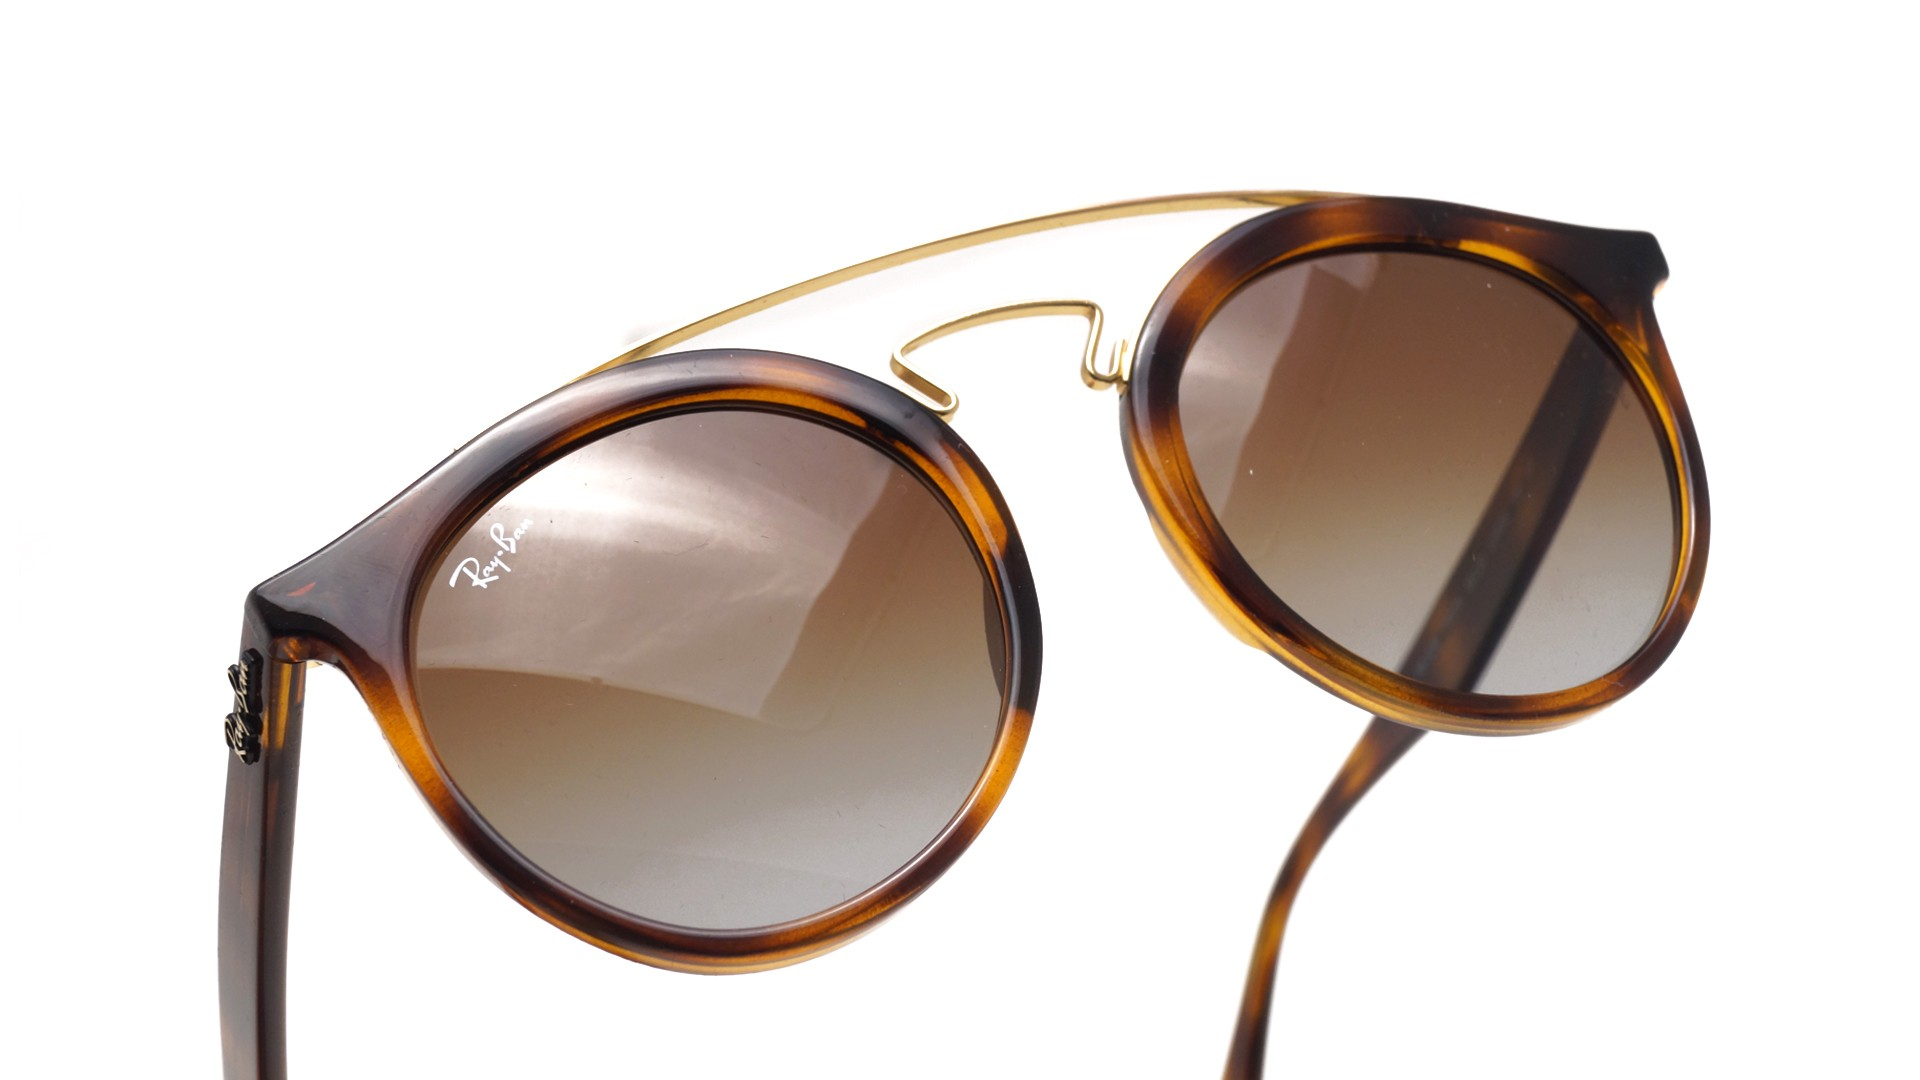 Sunglasses Ray-Ban New gatsby Tortoise RB4256 710 T5 49-20 Large Polarized  Gradient 4343757d04